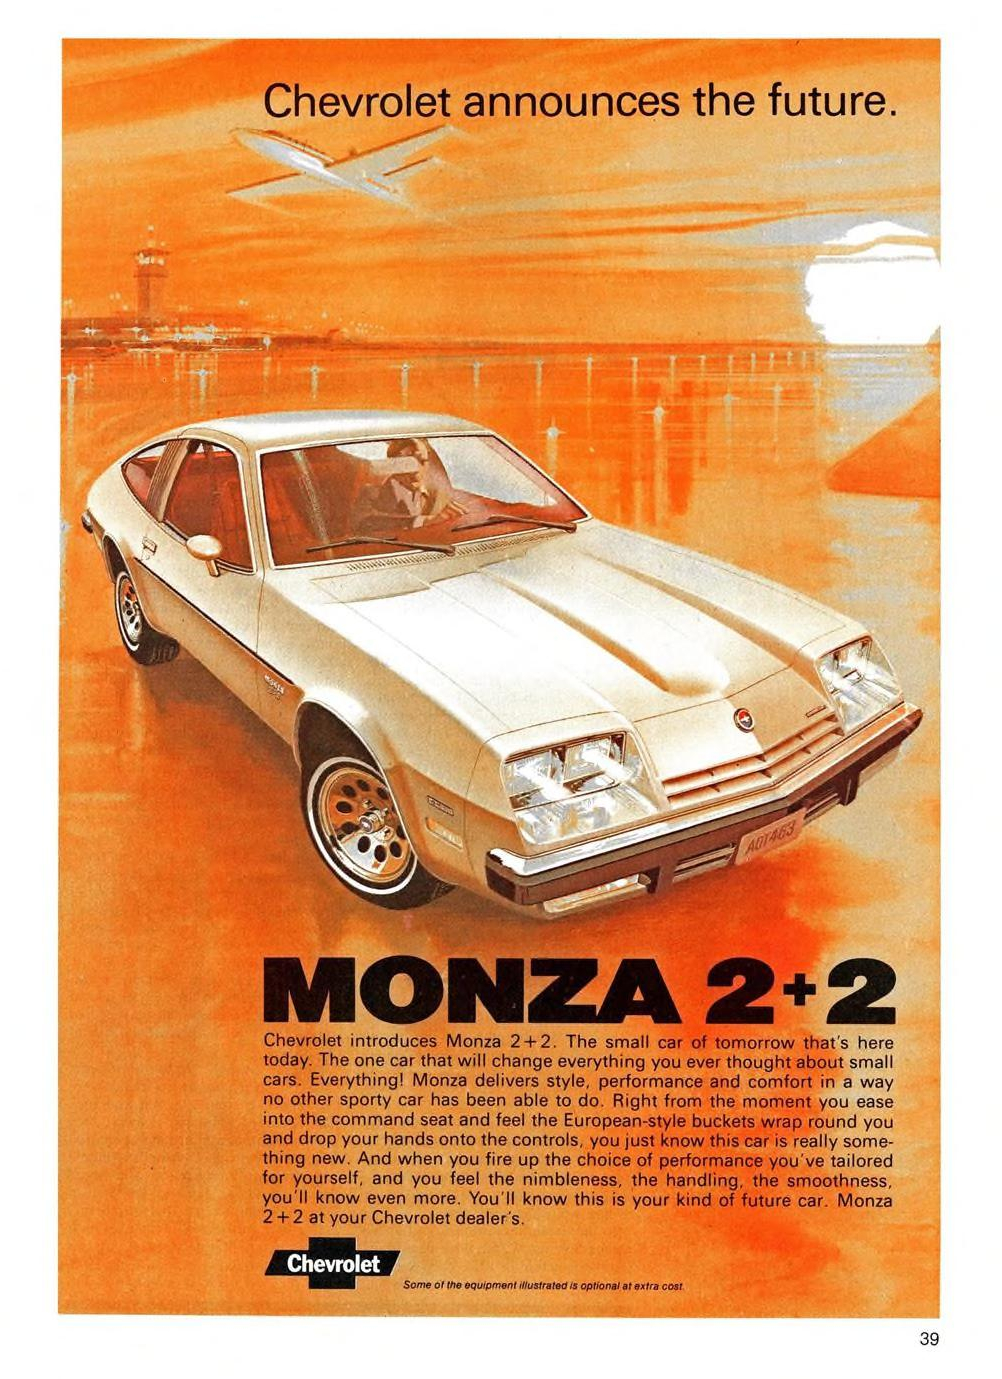 1975 Chevrolet Monza 2+2 - published in Maclean's - October 1, 1974